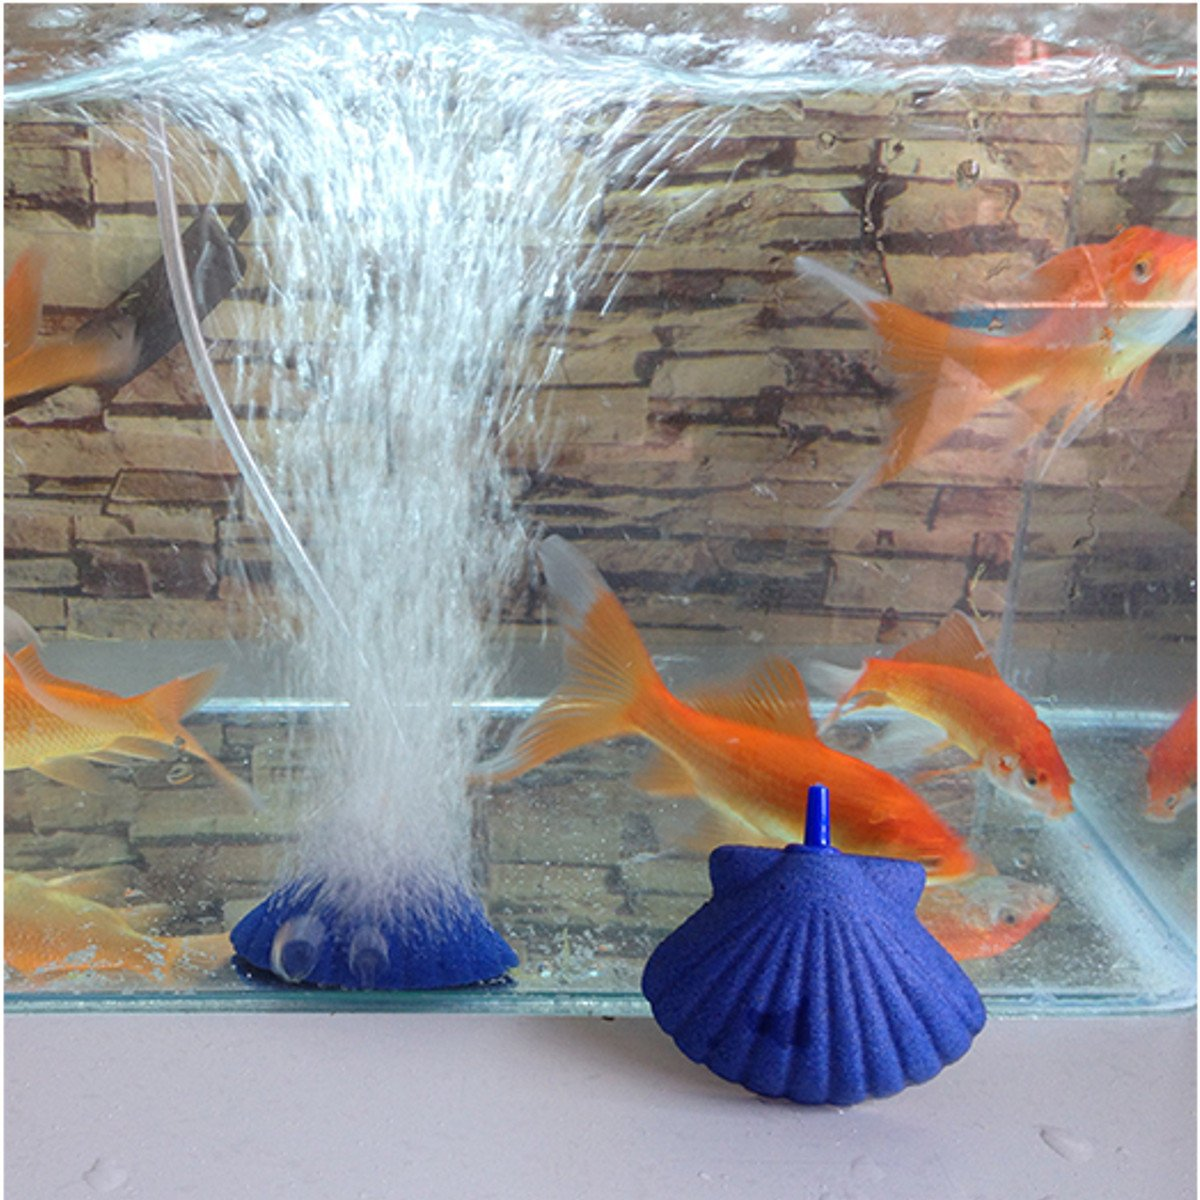 Bazaar Shell Shape Air Stone Bubble Aquarium Fish Tank Hydroponics Aerator Diffuser Fish Tank Bubble Pump Big Bazaar